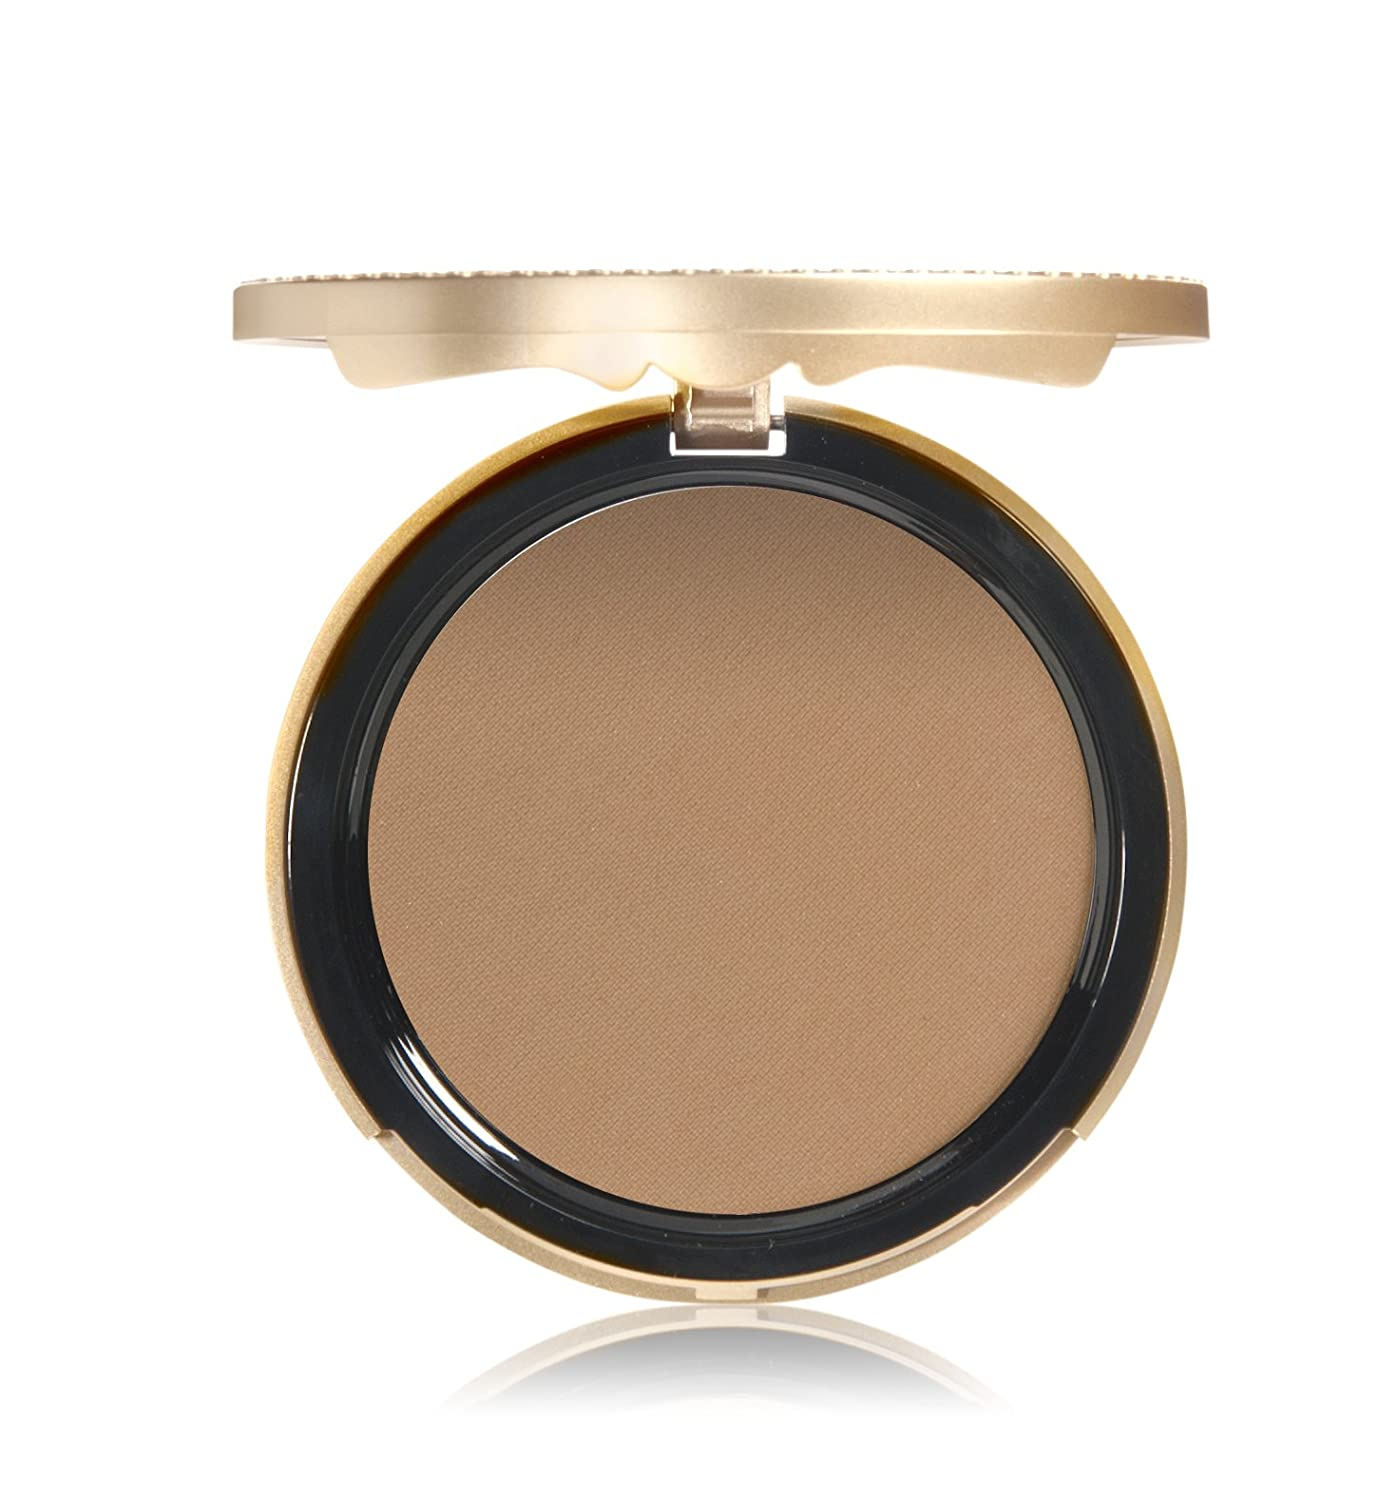 Amazon.com : Too Faced - Chocolate Soleil Matte Bronzing Powder ...